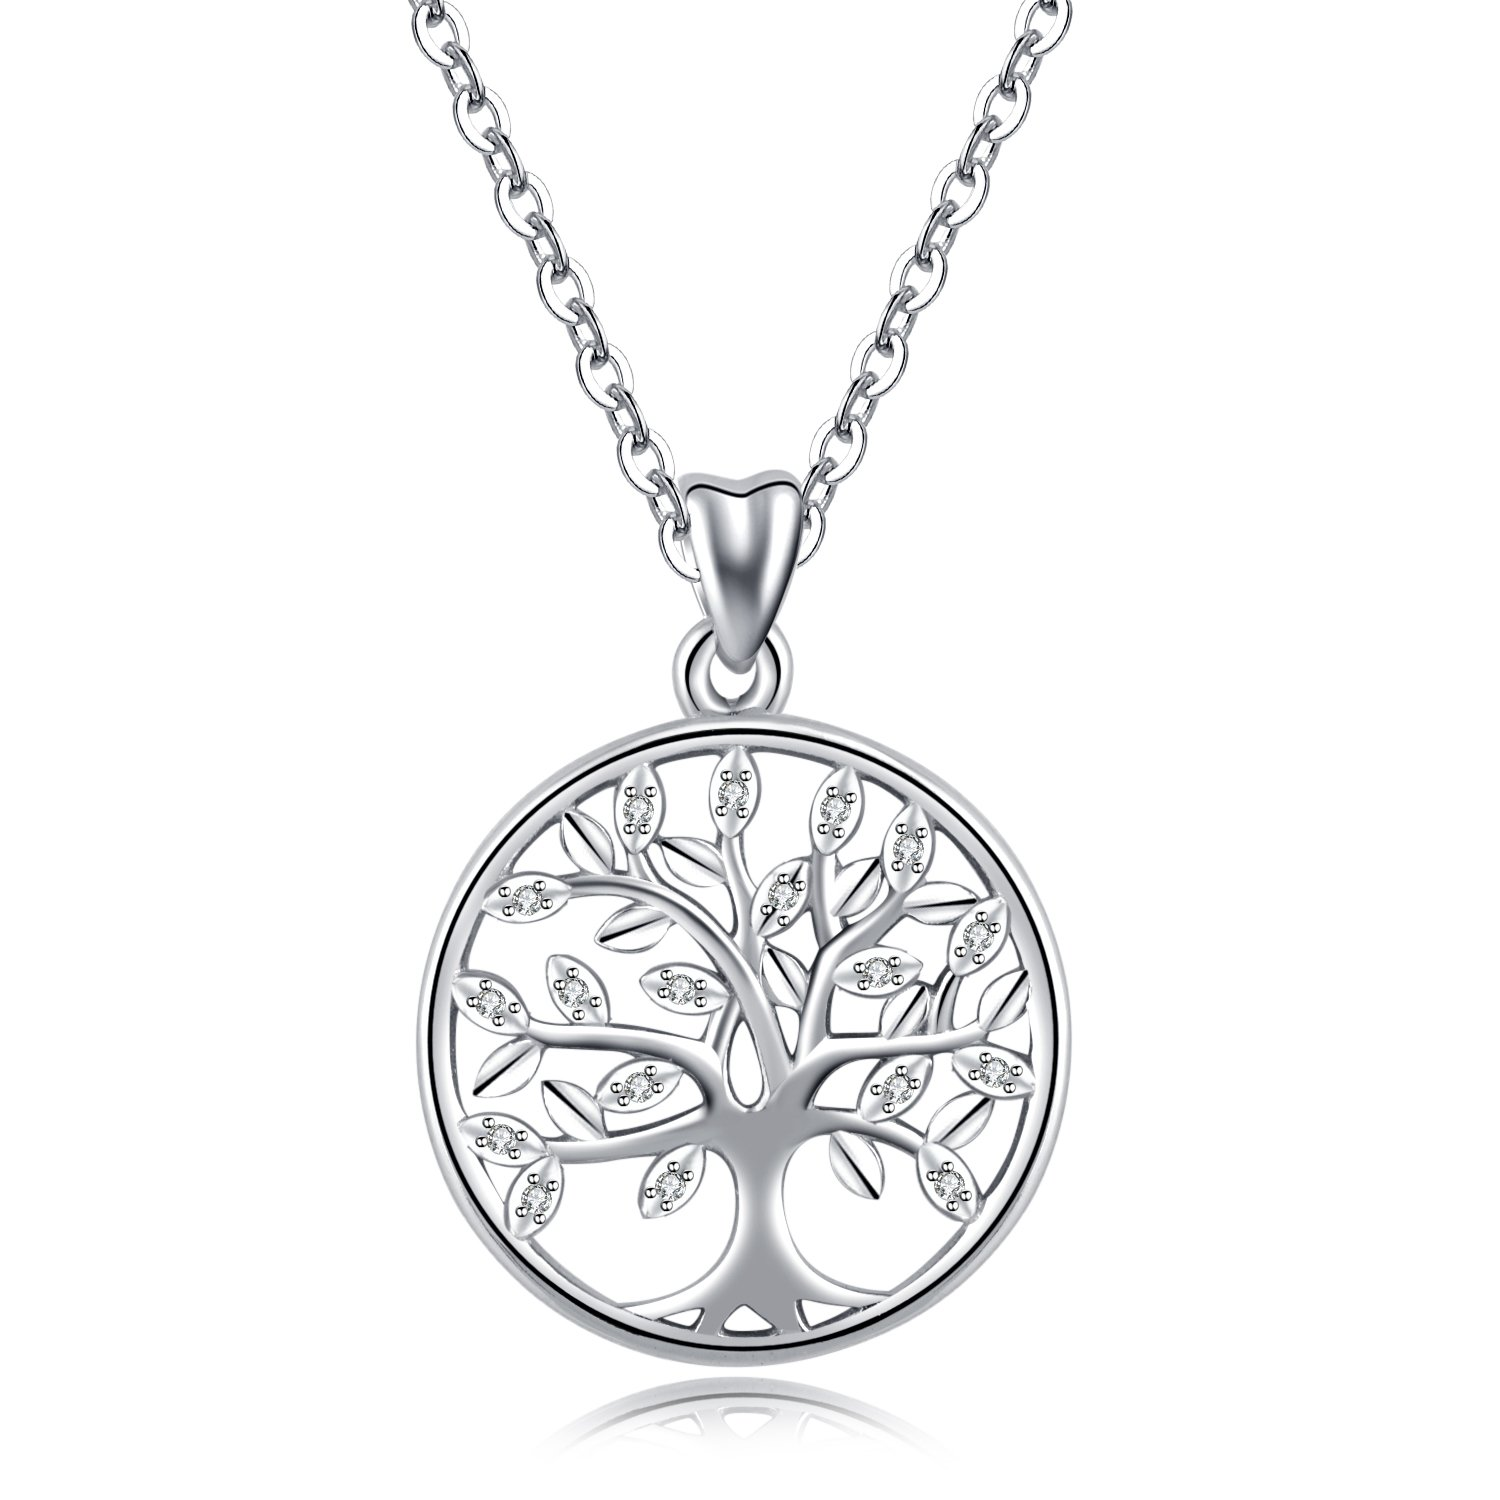 AEONSLOVE 925 Sterling Silver Family Tree of Life Cubic Zirconia Pendant Necklace for Women, 18'' Gifts